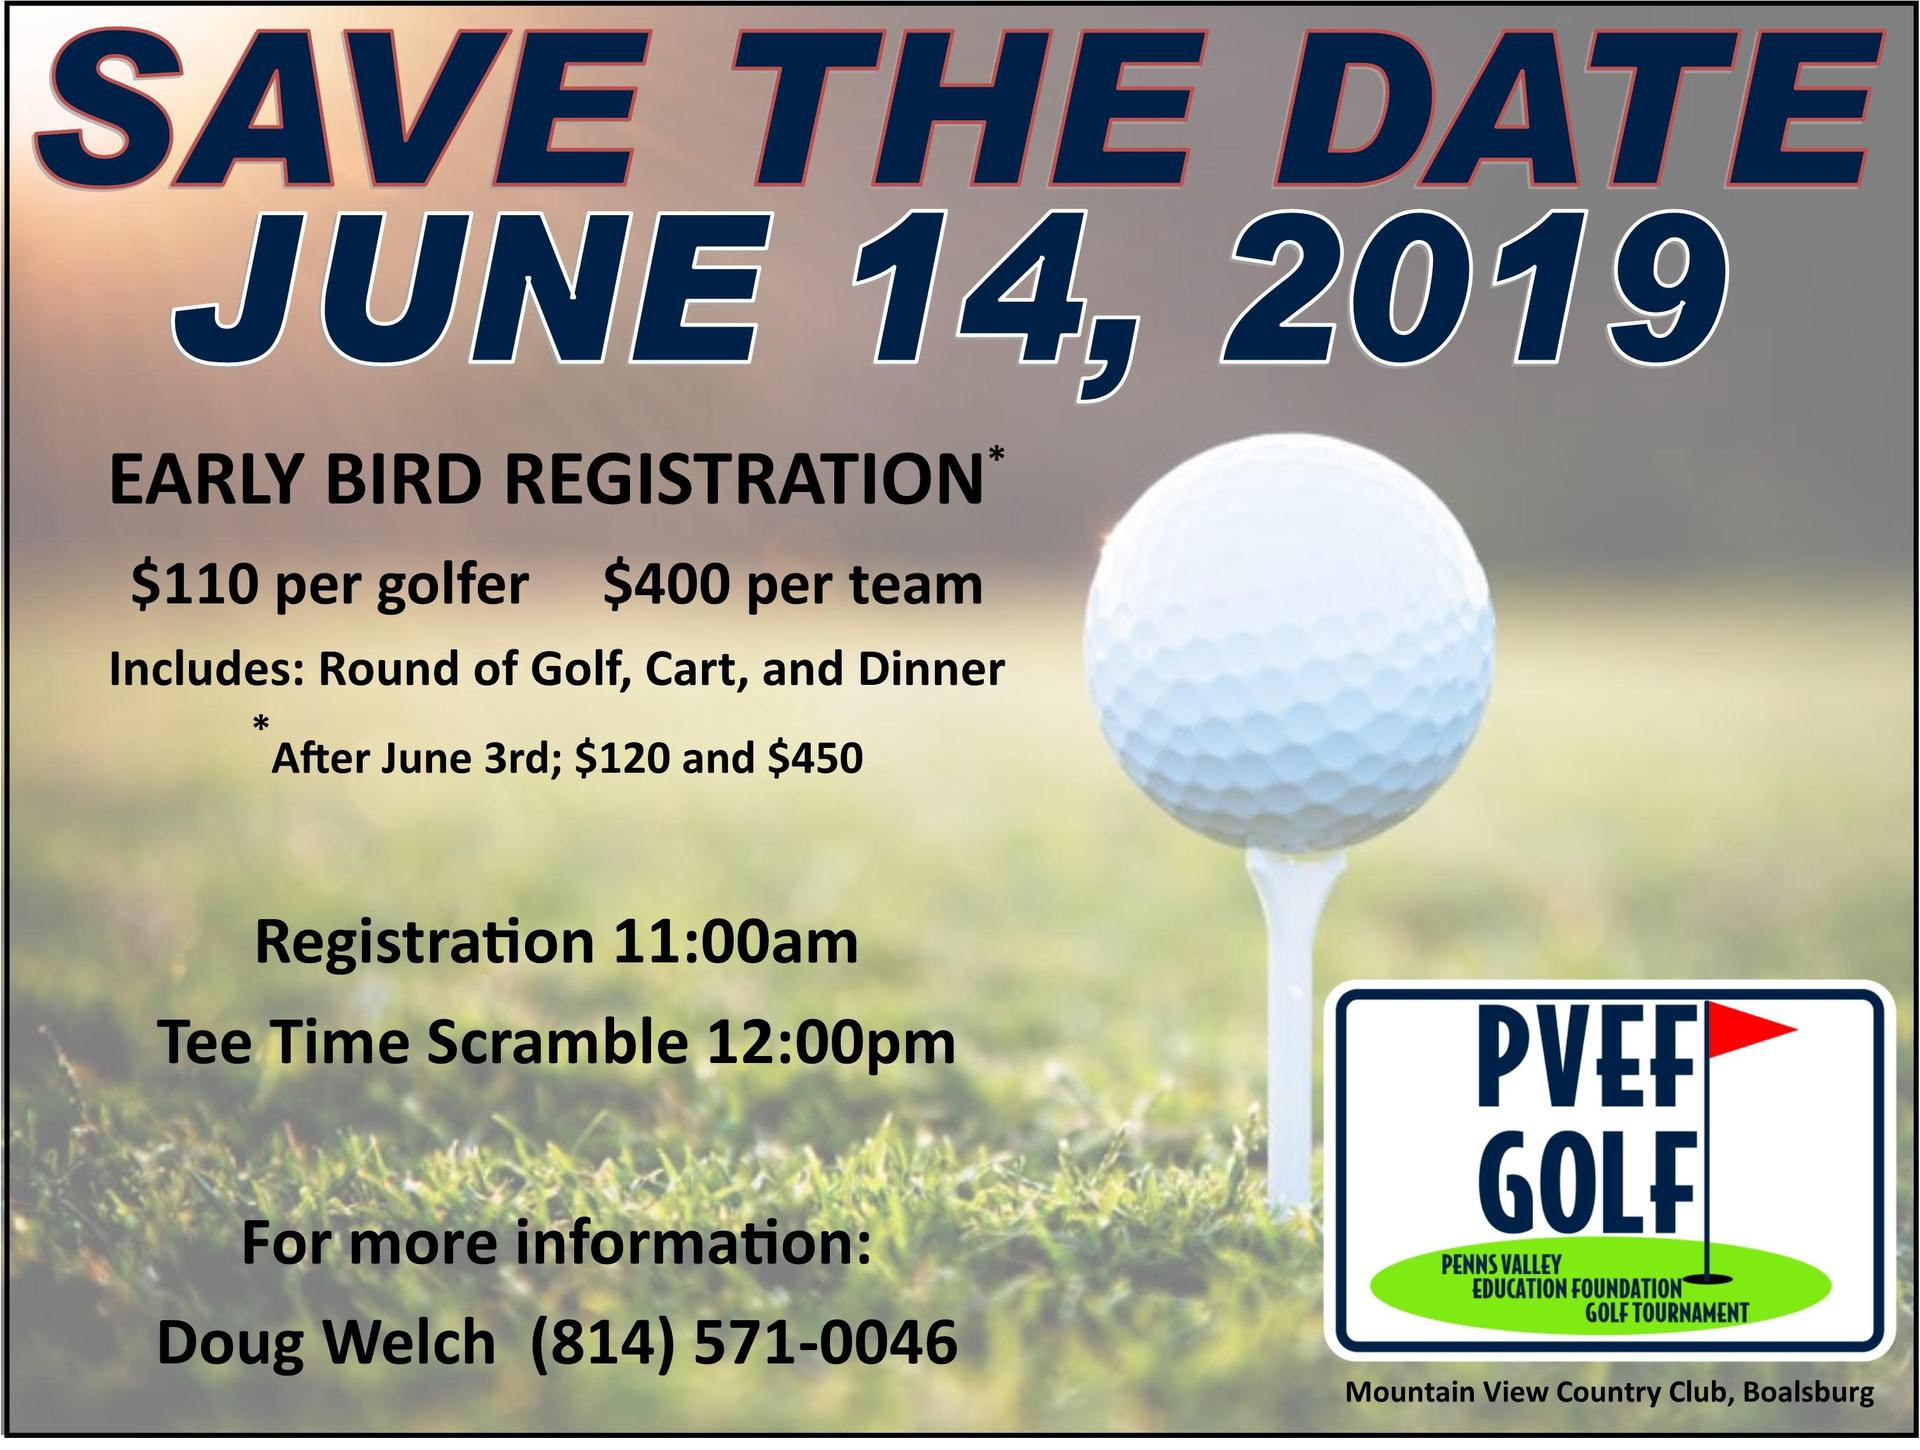 PVEF golf tournament save the date